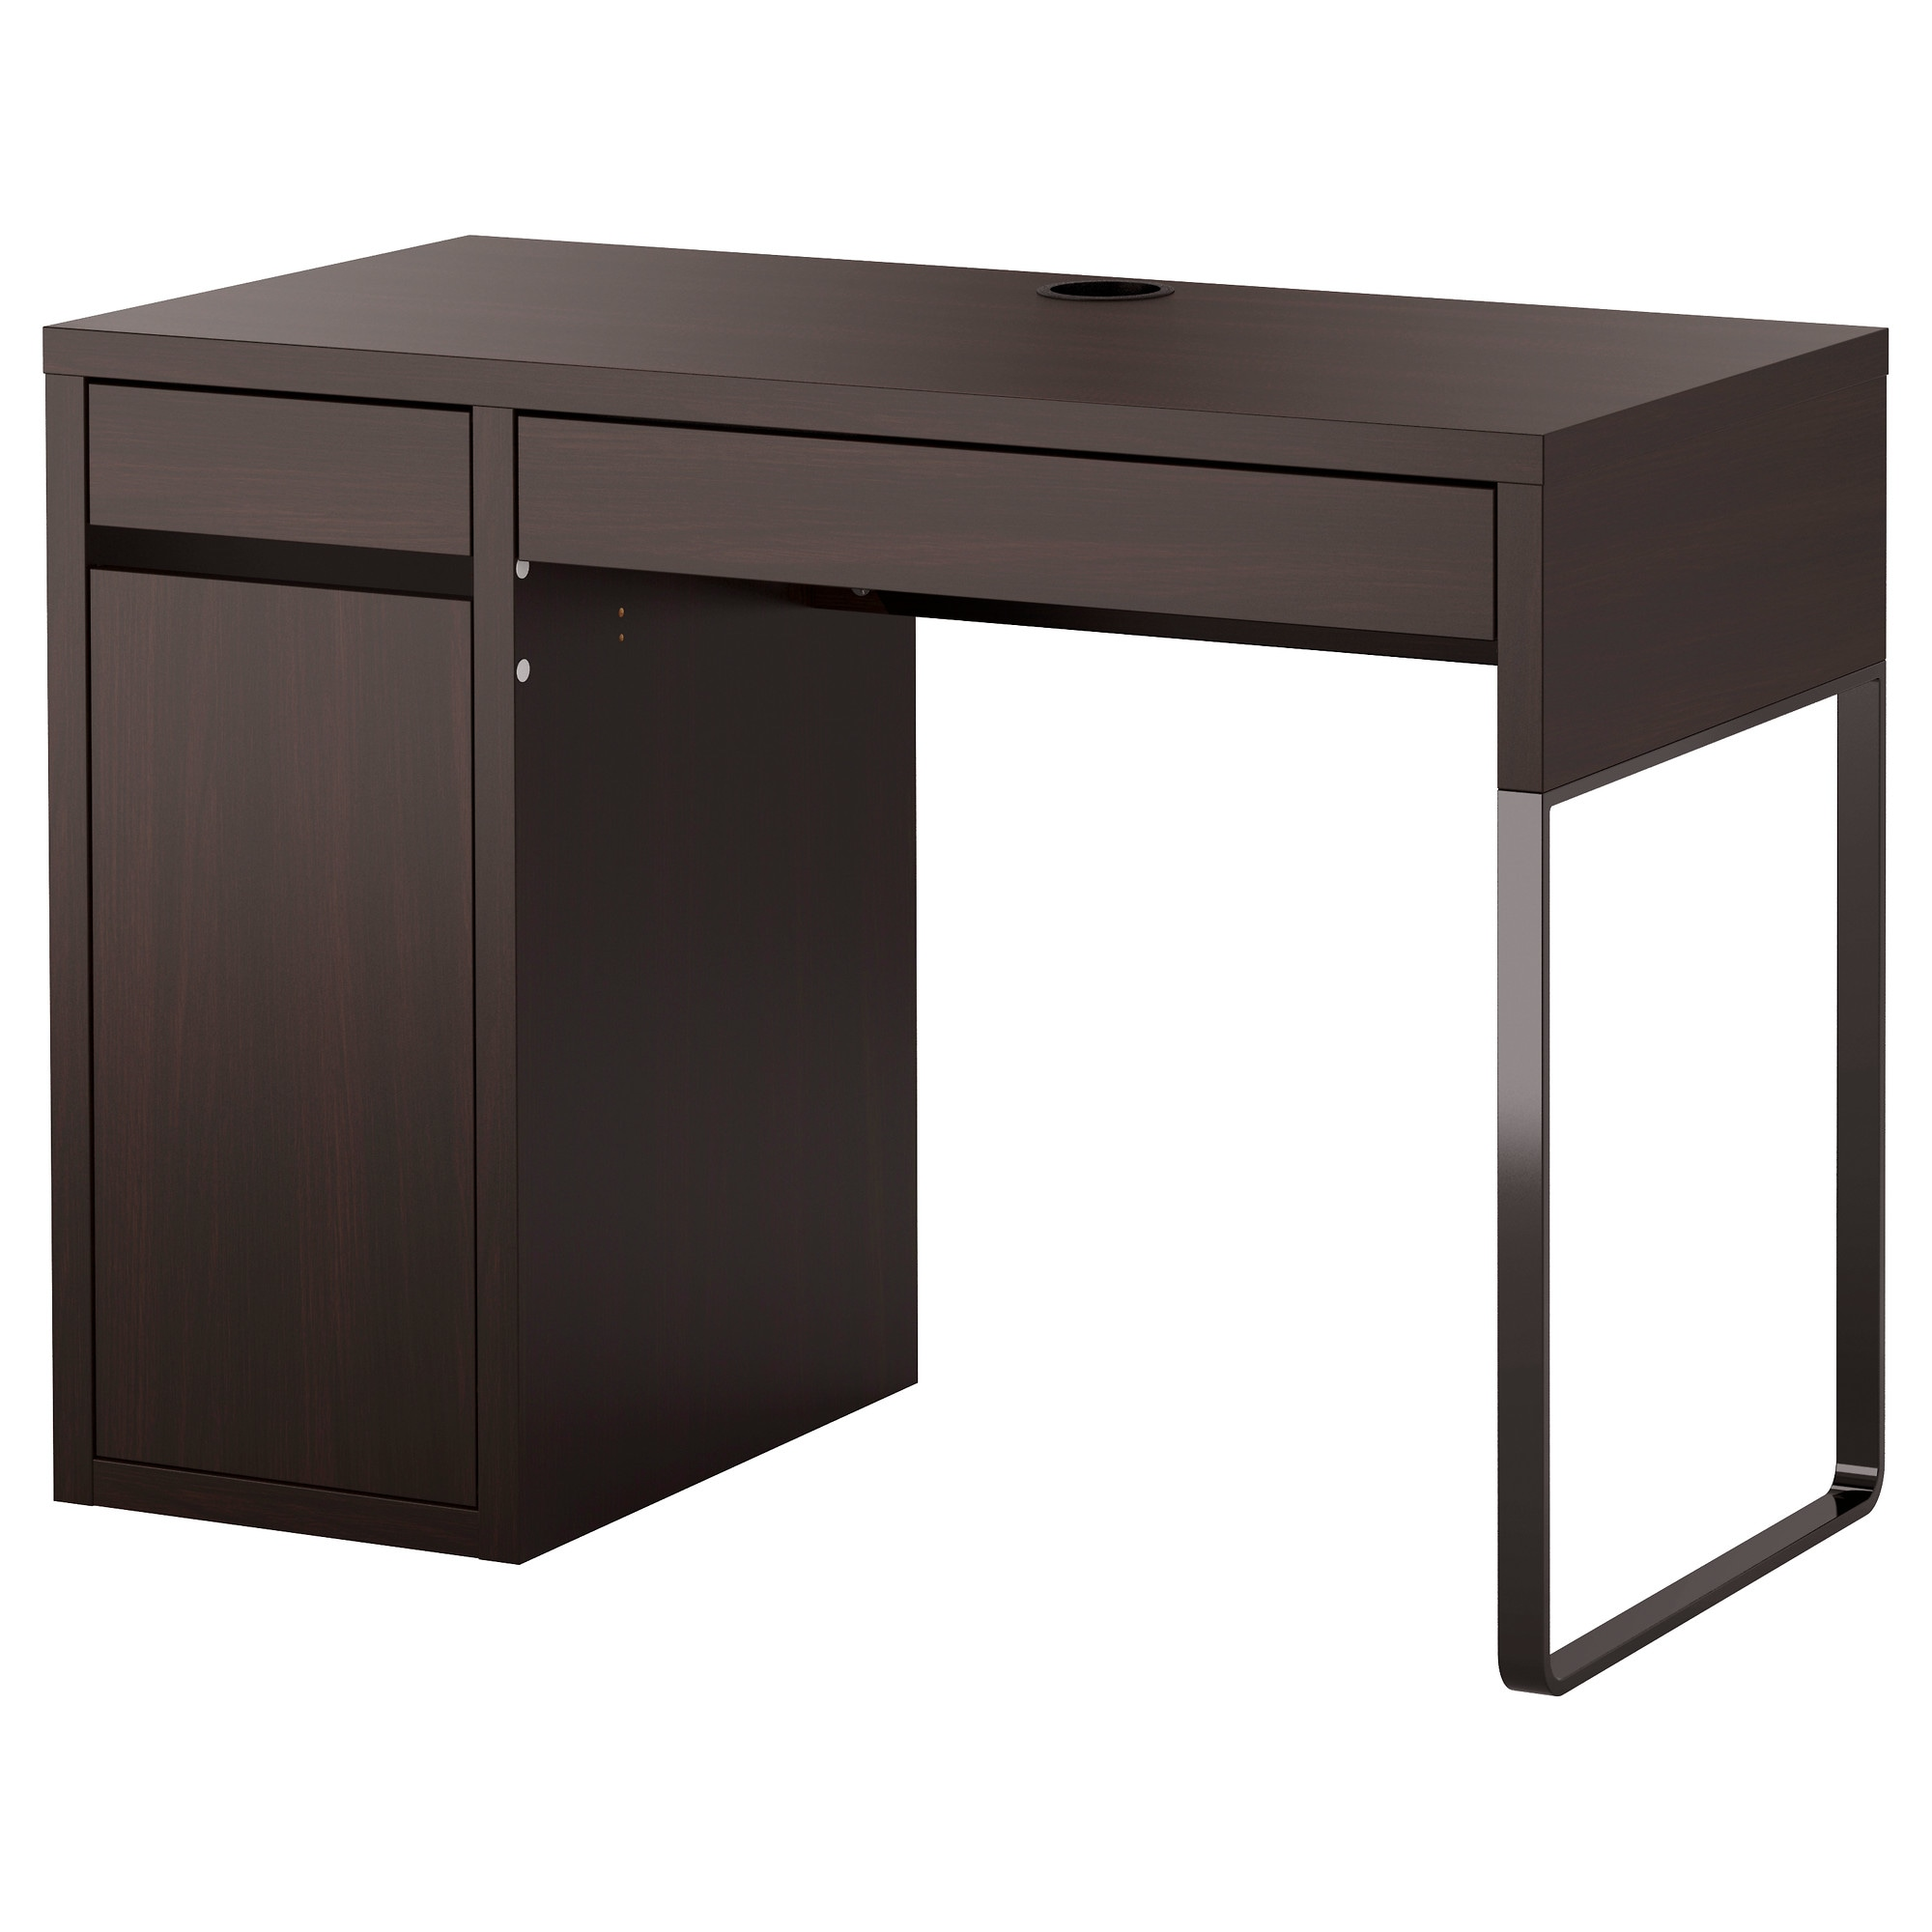 Desk Simple Simple Micke Desk  Blackbrown  Ikea 2017